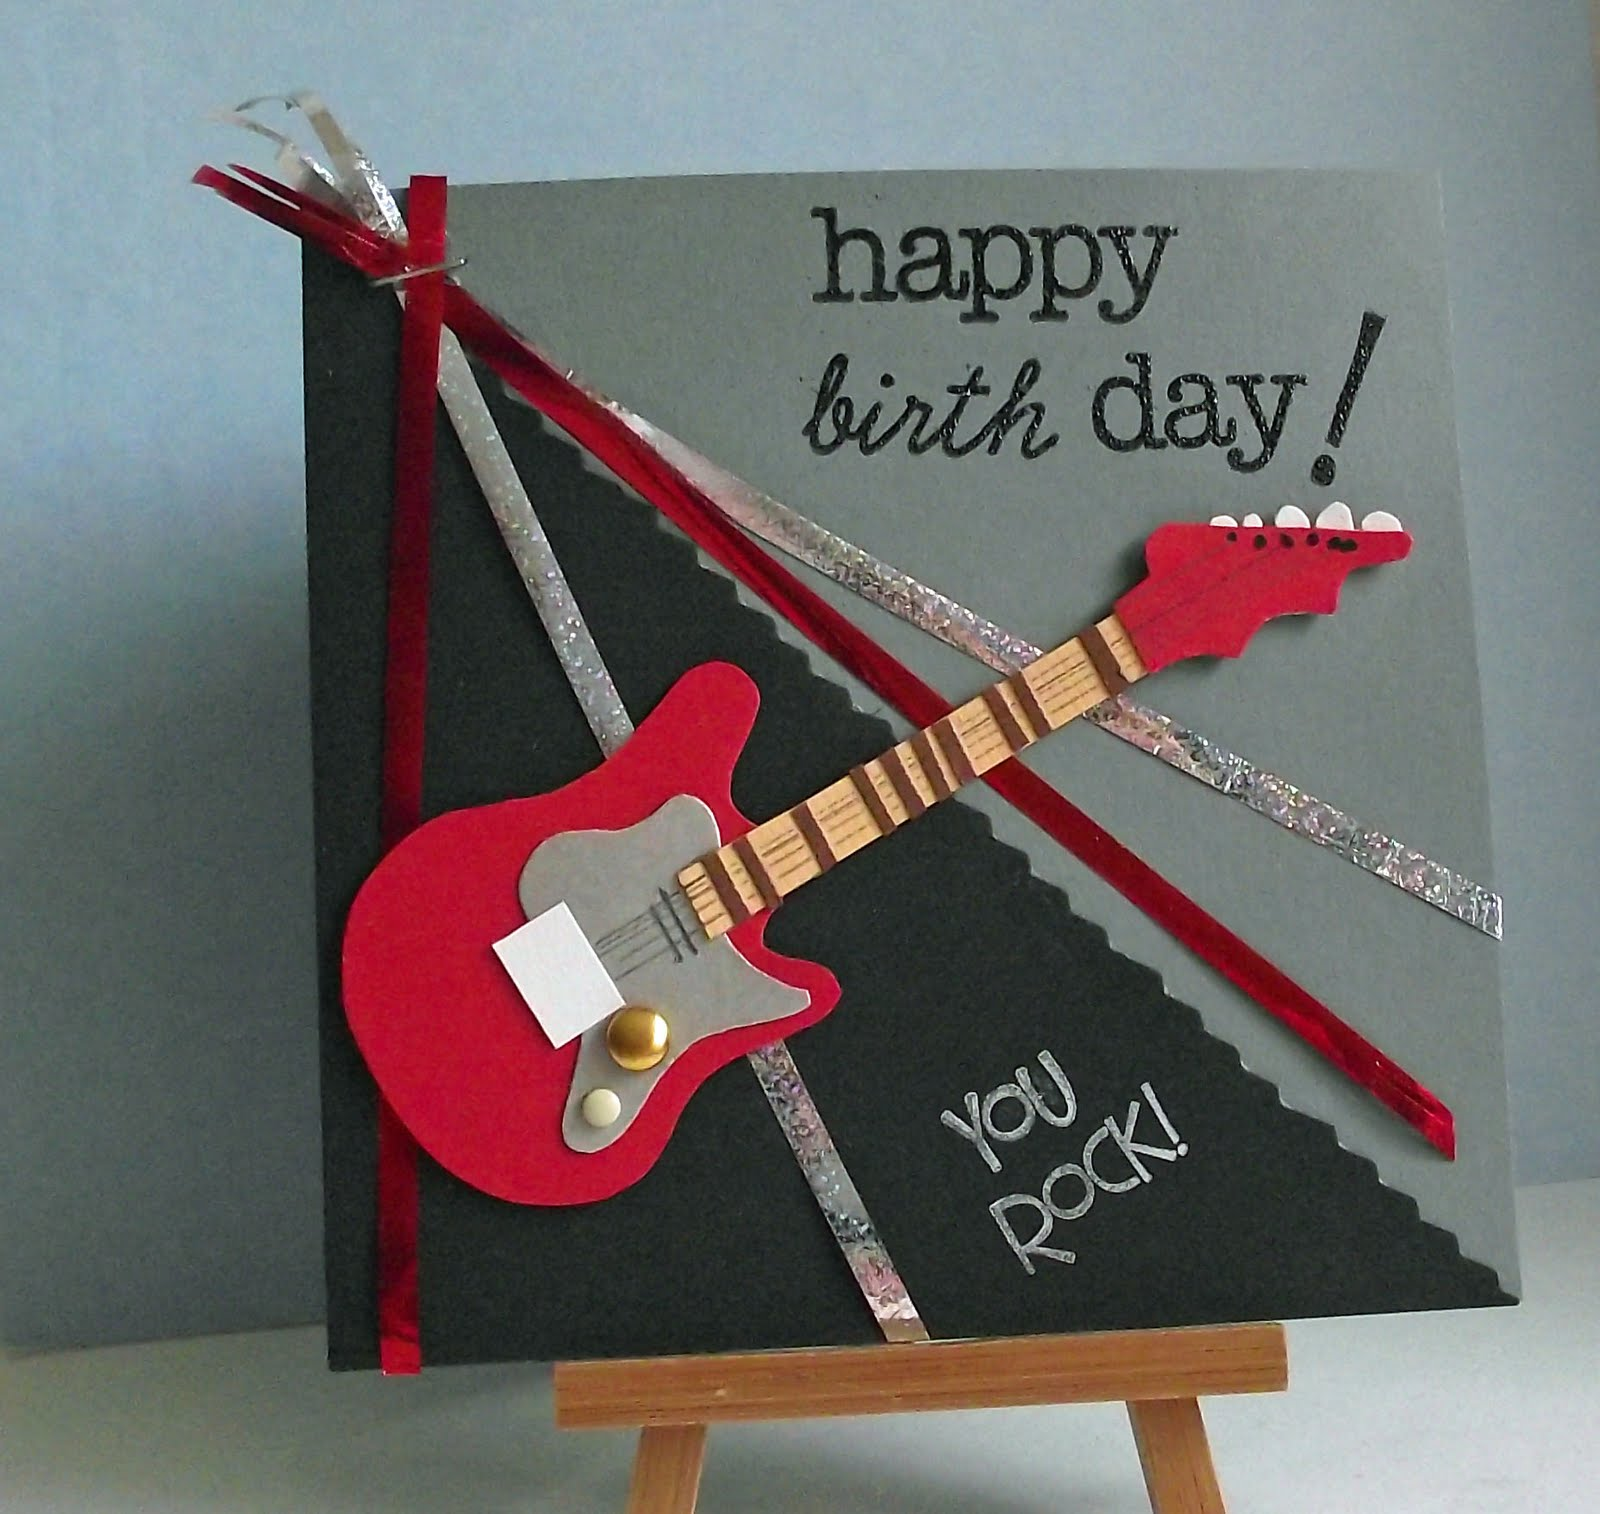 Tintin heart birthday guitar great inspiration from my copy papercraft inspirations magazine issue 88 i needed a birthday card for a teenager male and this guitar template was just bookmarktalkfo Choice Image